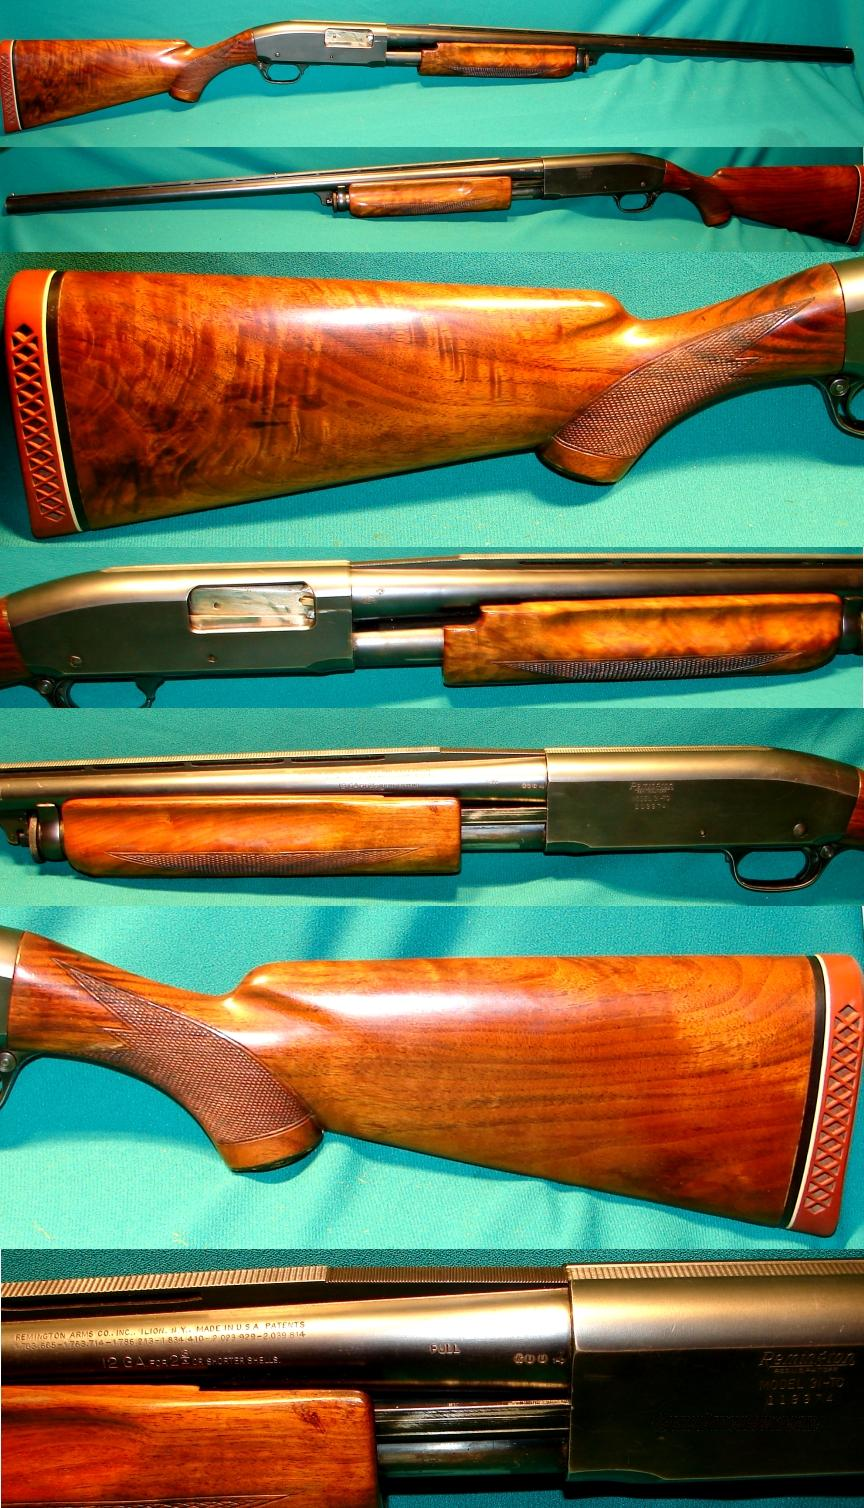 Remington 31-TC 12 GA TRAP  Guns > Shotguns > Remington Shotguns  > Pump > Trap/Skeet